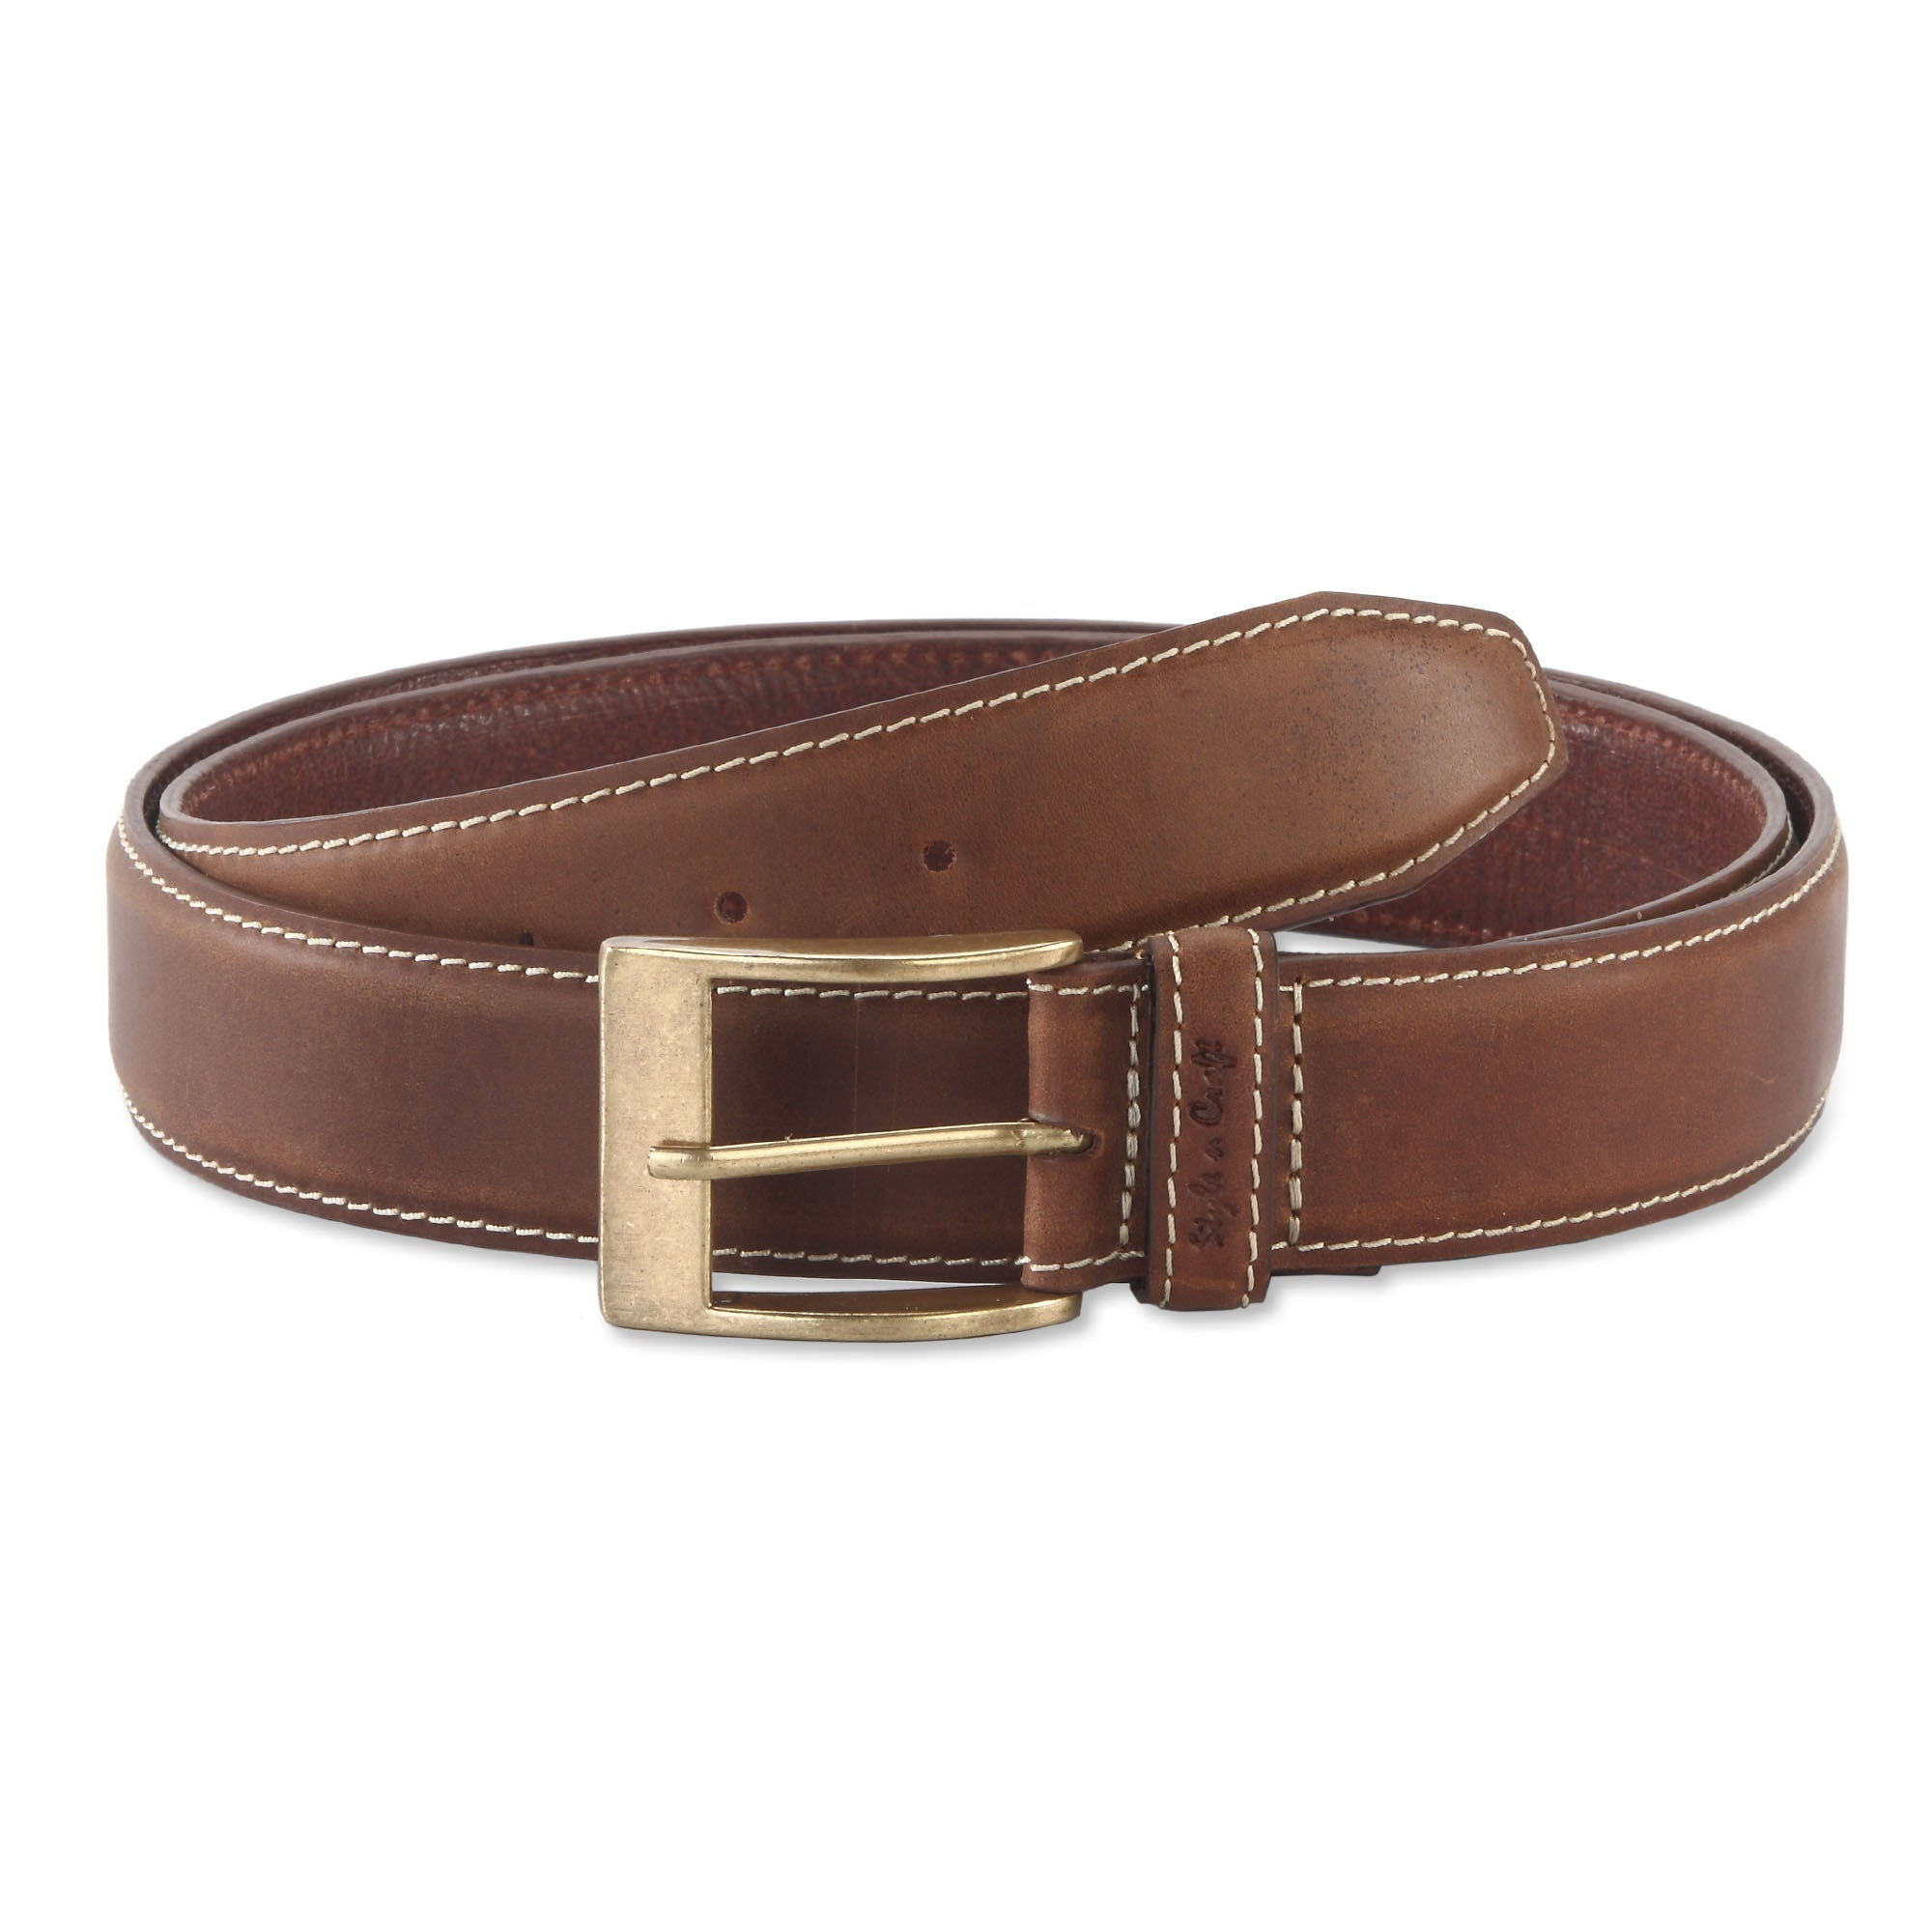 391902 - one and a half inch wide leather belt in brown color top grain leather - front view